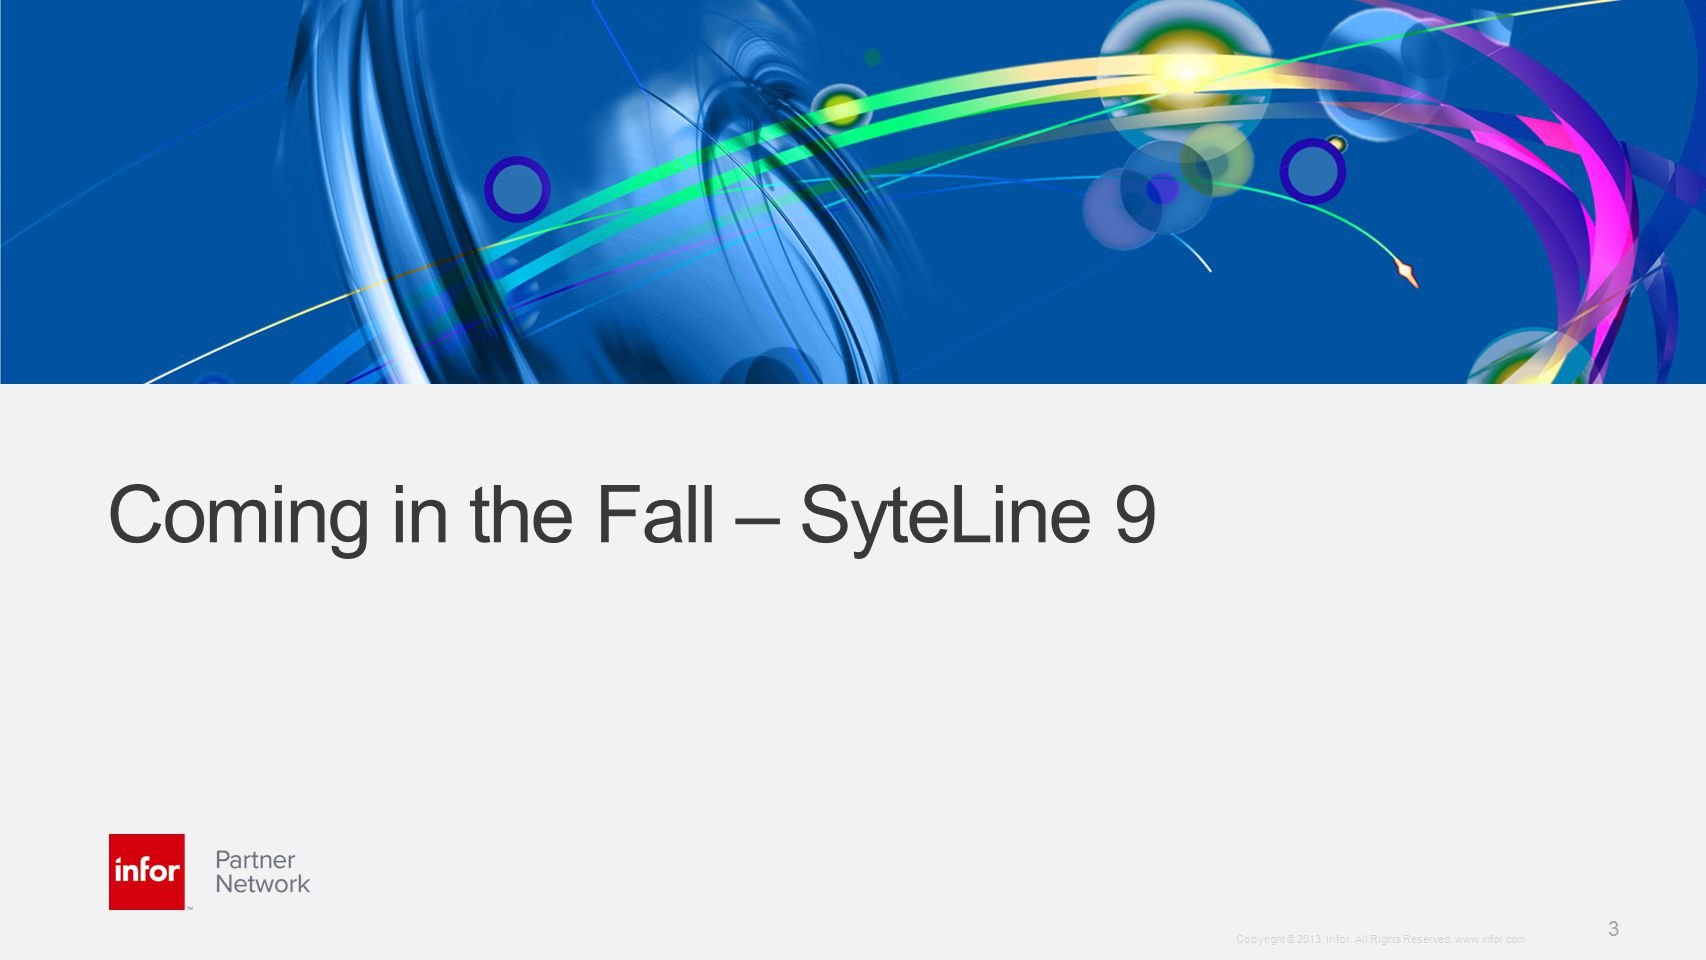 Coming in the Fall – SyteLine 9